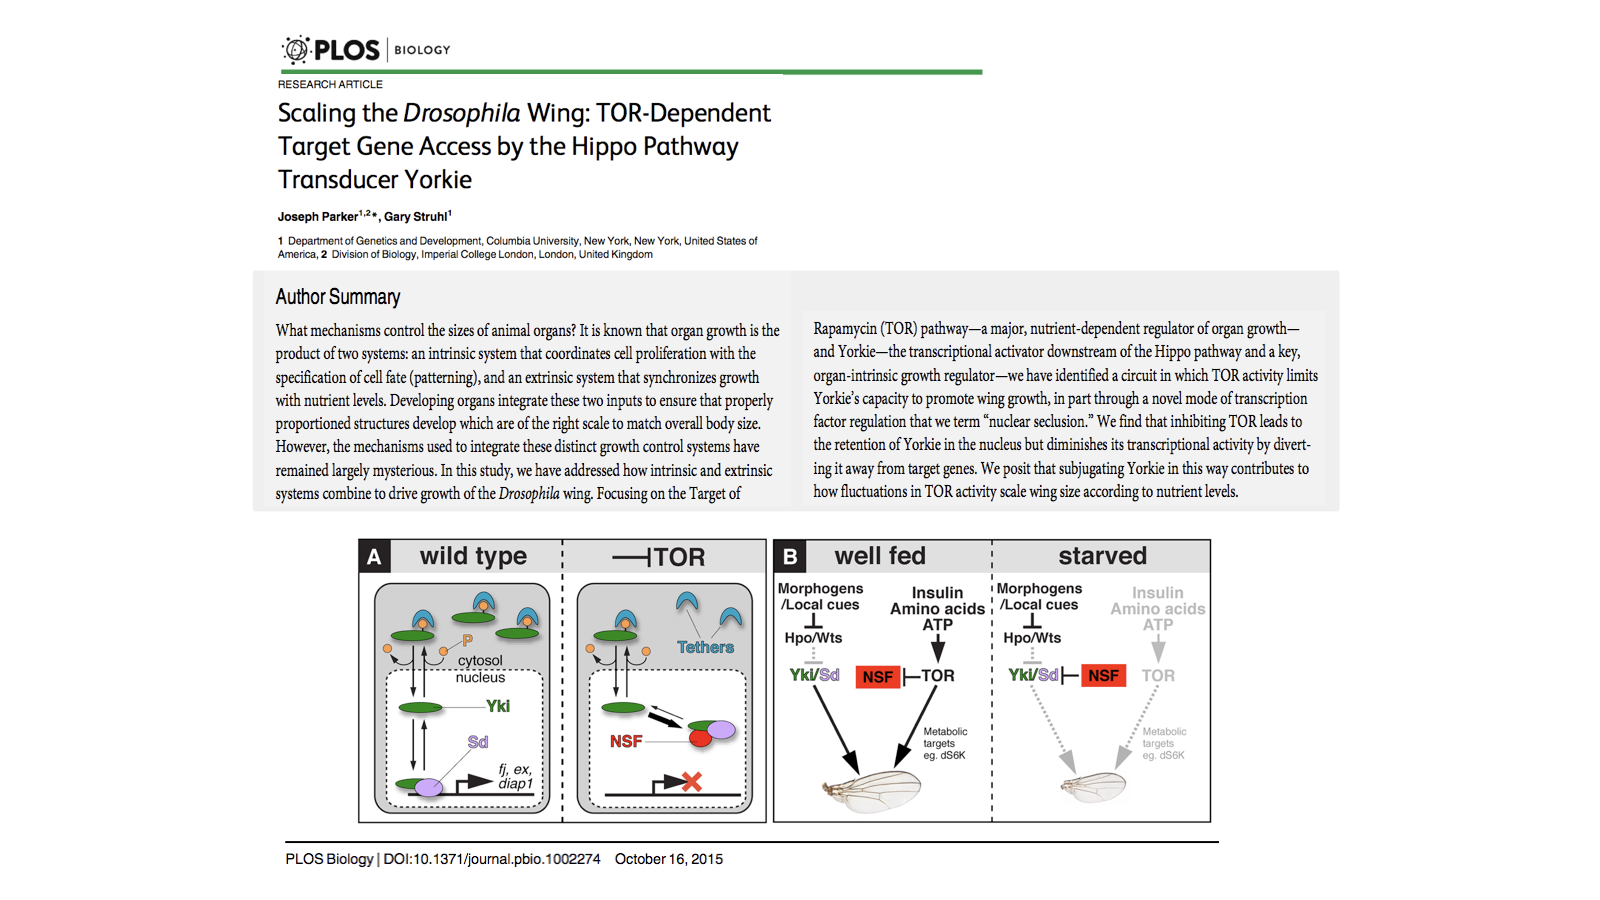 Scaling the Drosophila Wing: TOR-Dependent Target Gene Access by the Hippo Pathway Transducer Yorkie